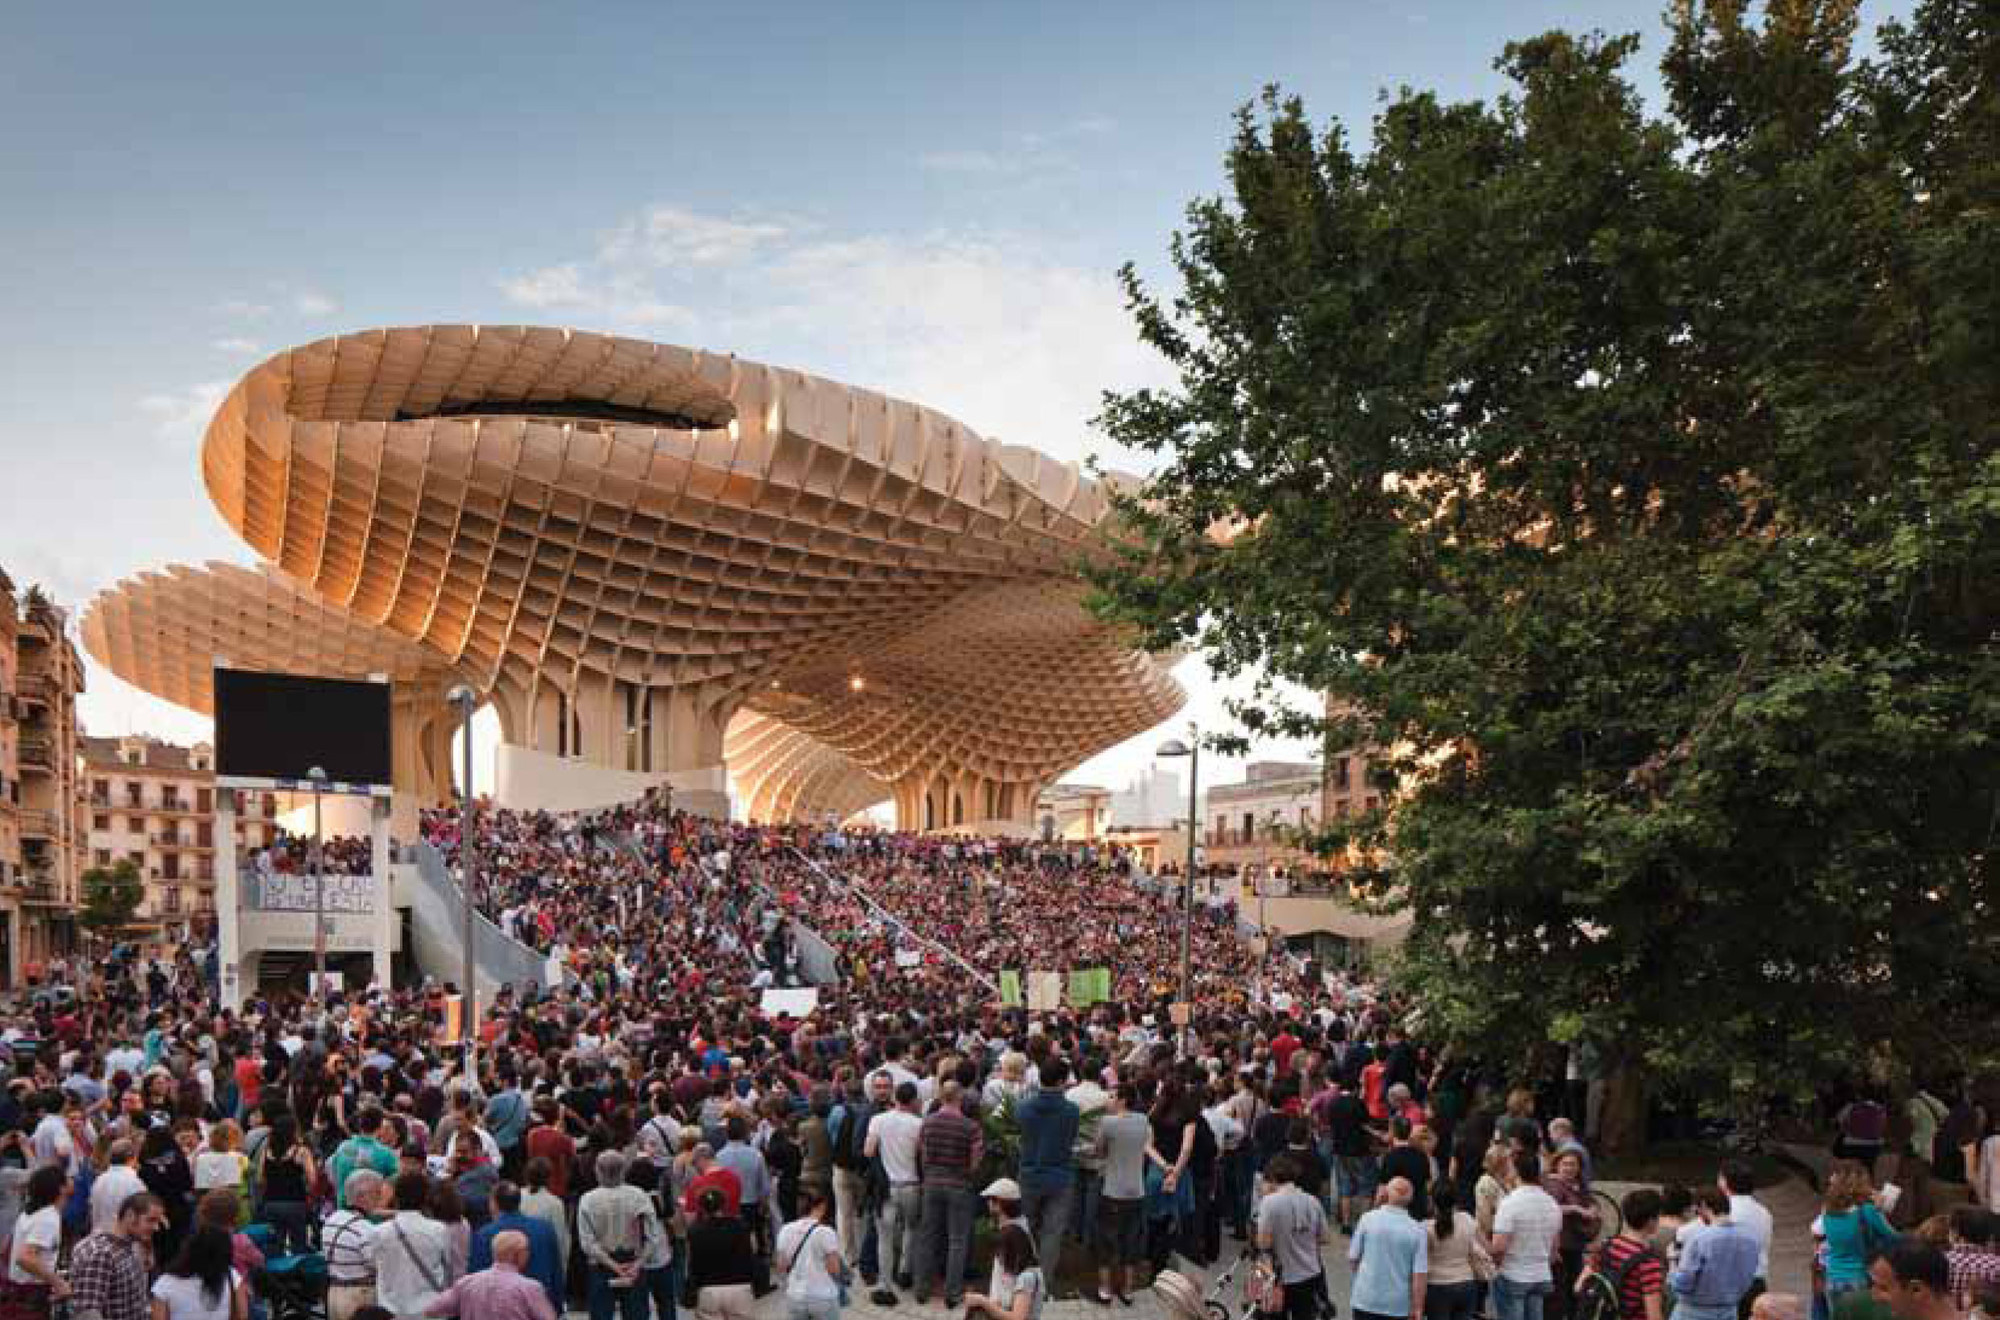 Son anunciados los ganadores de Urban Living Awards 2013, Metropol Parasol; J. Mayer H. Architekten. Image Courtesy of Urban Living Awards